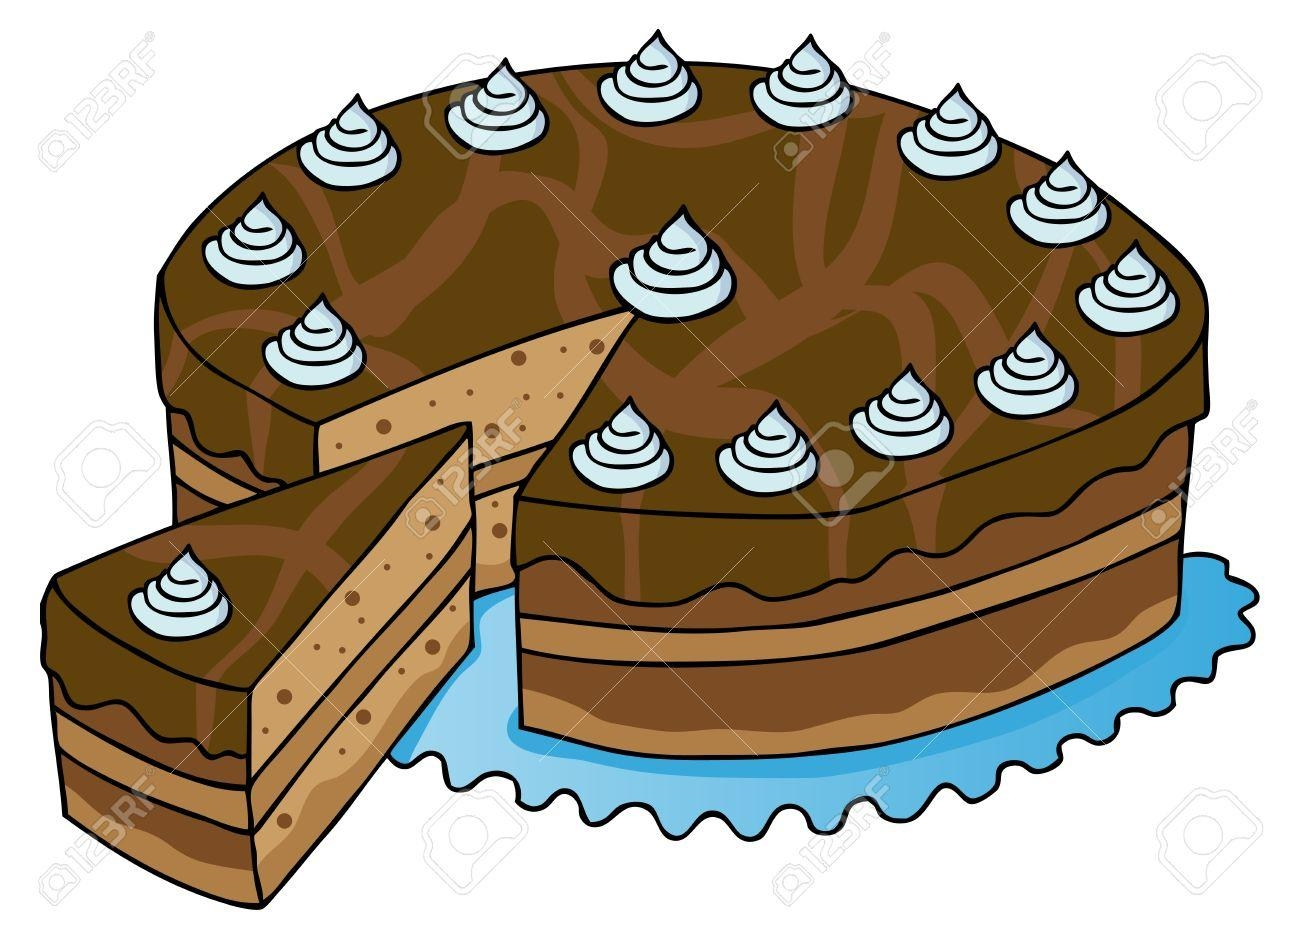 Chocolate cake pencil and. Baked goods clipart cartoon